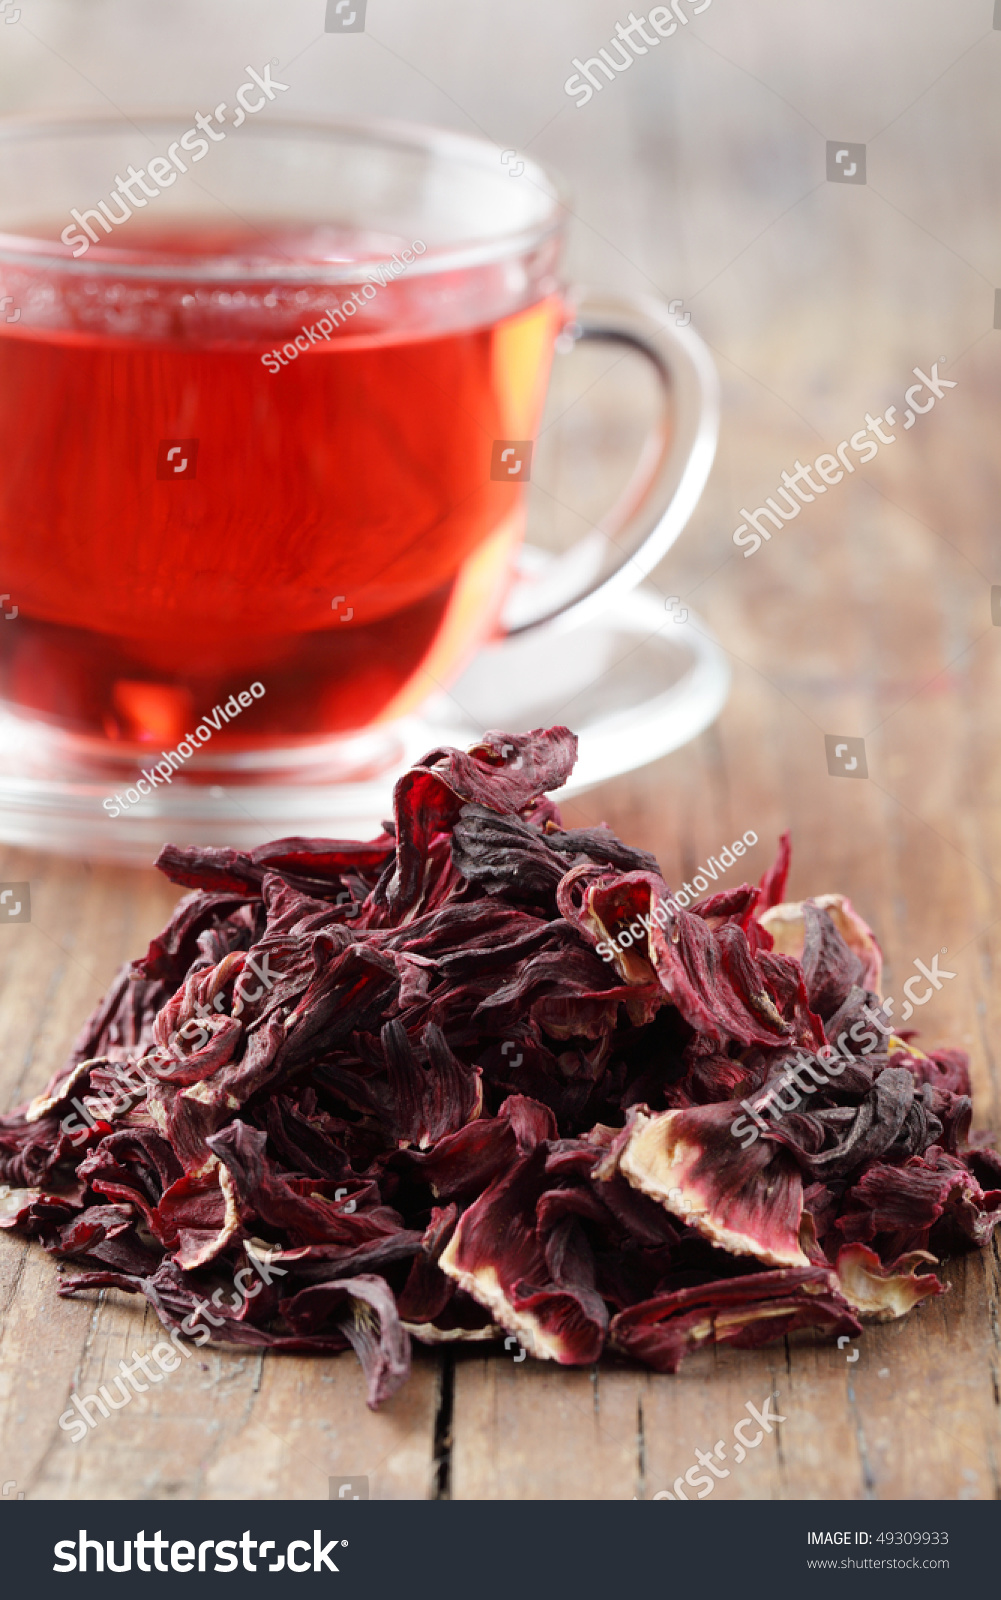 Heap Of Dried Hibiscus Calyces Against A Cup Of Hibiscus Tea Stock ...